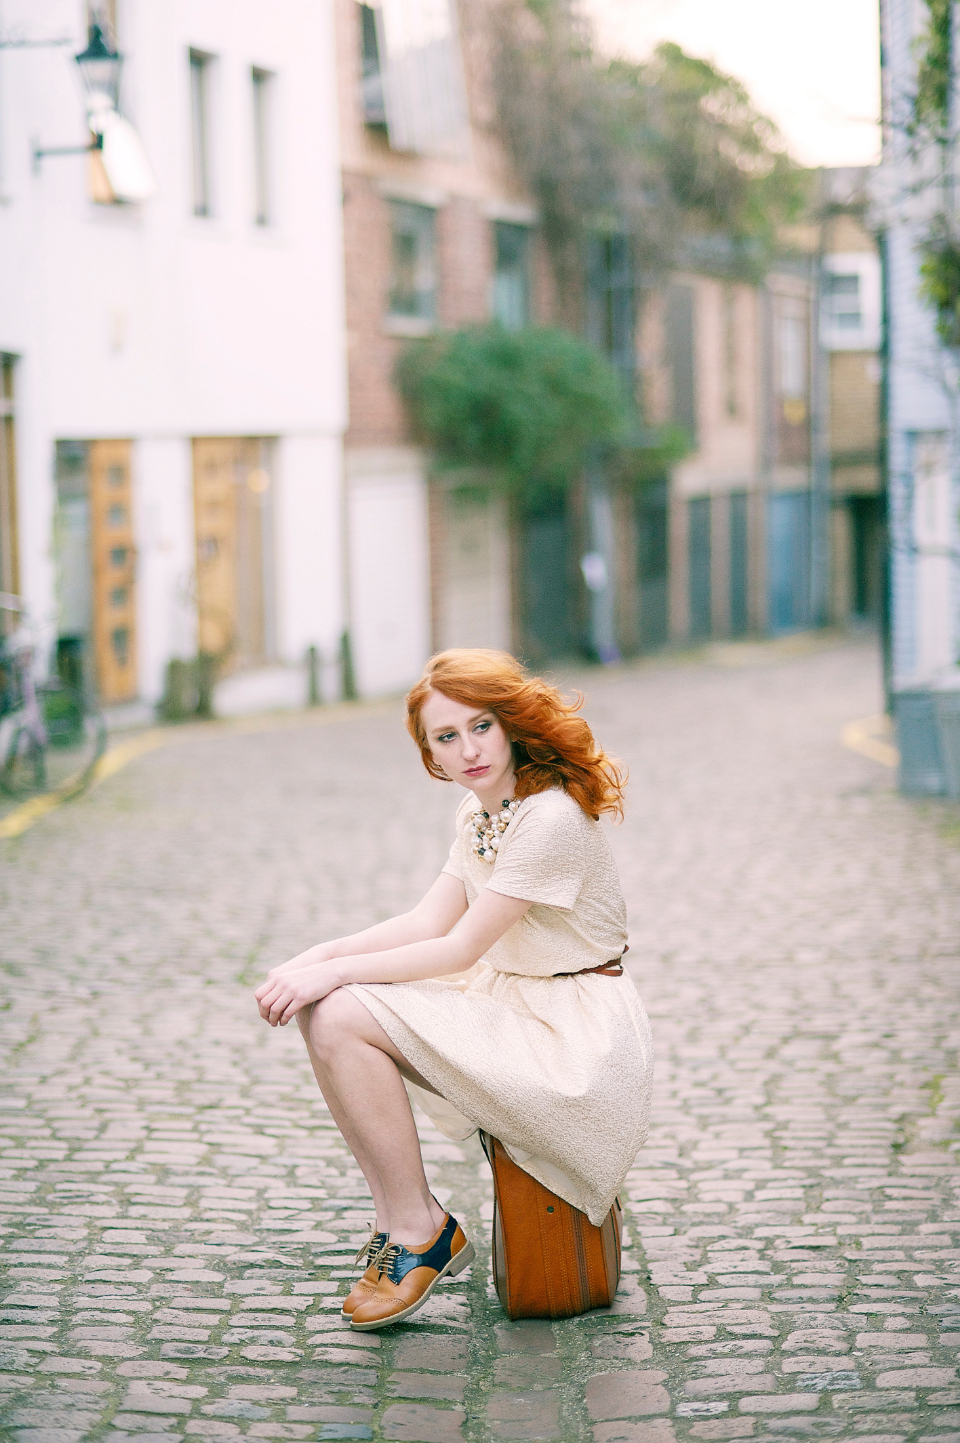 fashion model sitting suitcase street cobbles red haor girl female attractive daylight people travel